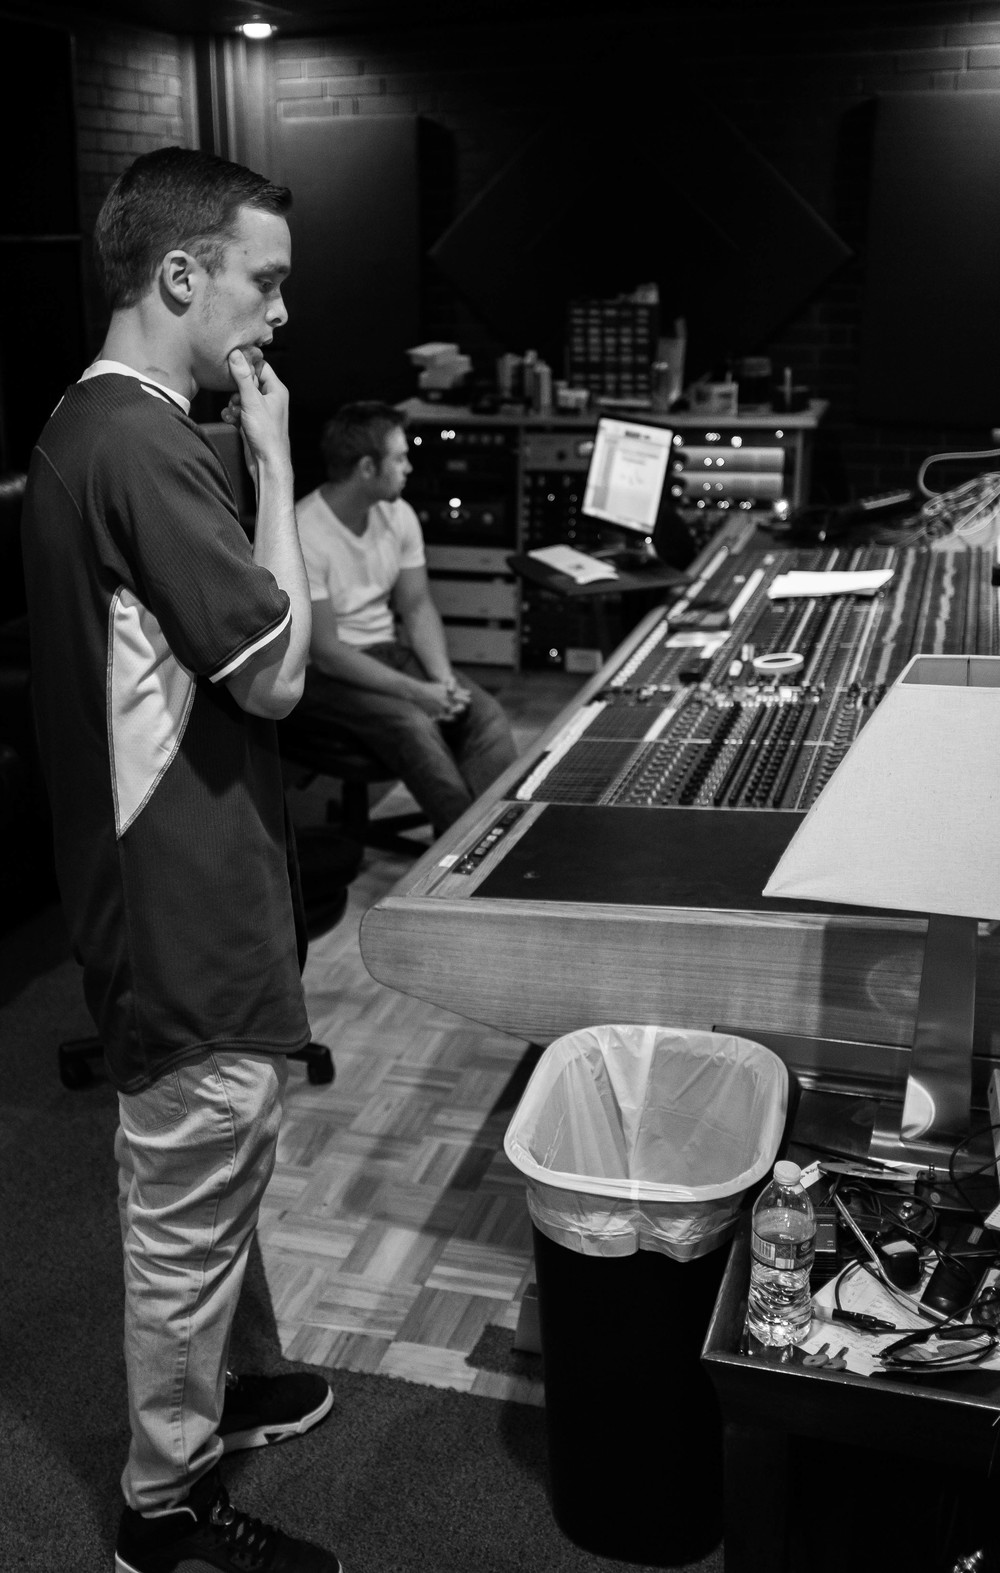 Lucid checking out one of the takes he had just done in the booth. One thing I will say about him, is he wants to always make sure his music is perfect. This was about the 5th or 6th take on an ad-lib he is listening to.